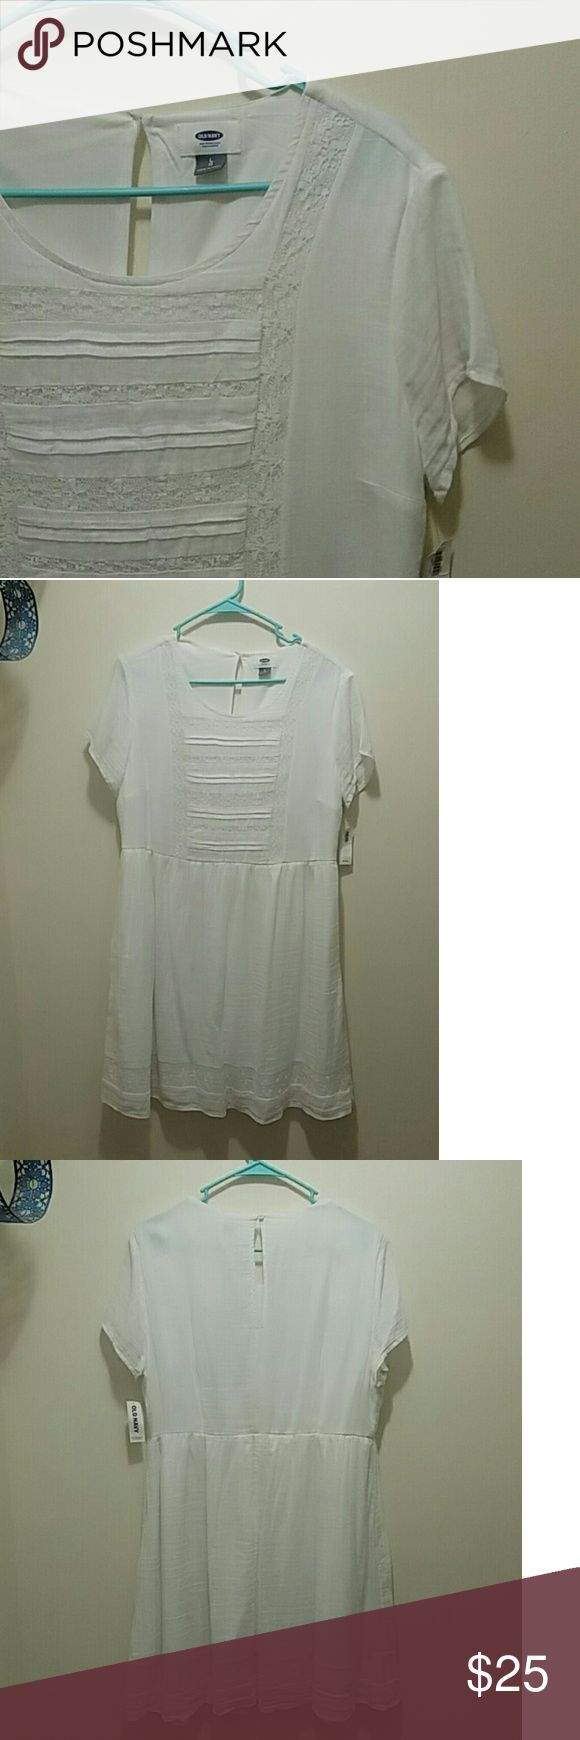 Old Navy white summer dress Light flowy dress perfect for a summer garden party. Lace detail adds a simple but feminine touch.    Never worn. I bought it for an event but I found a dress that fit me better. Falls to knee   ✅offers on items over $10 🚫off posh 🚫modeling Old Navy Dresses